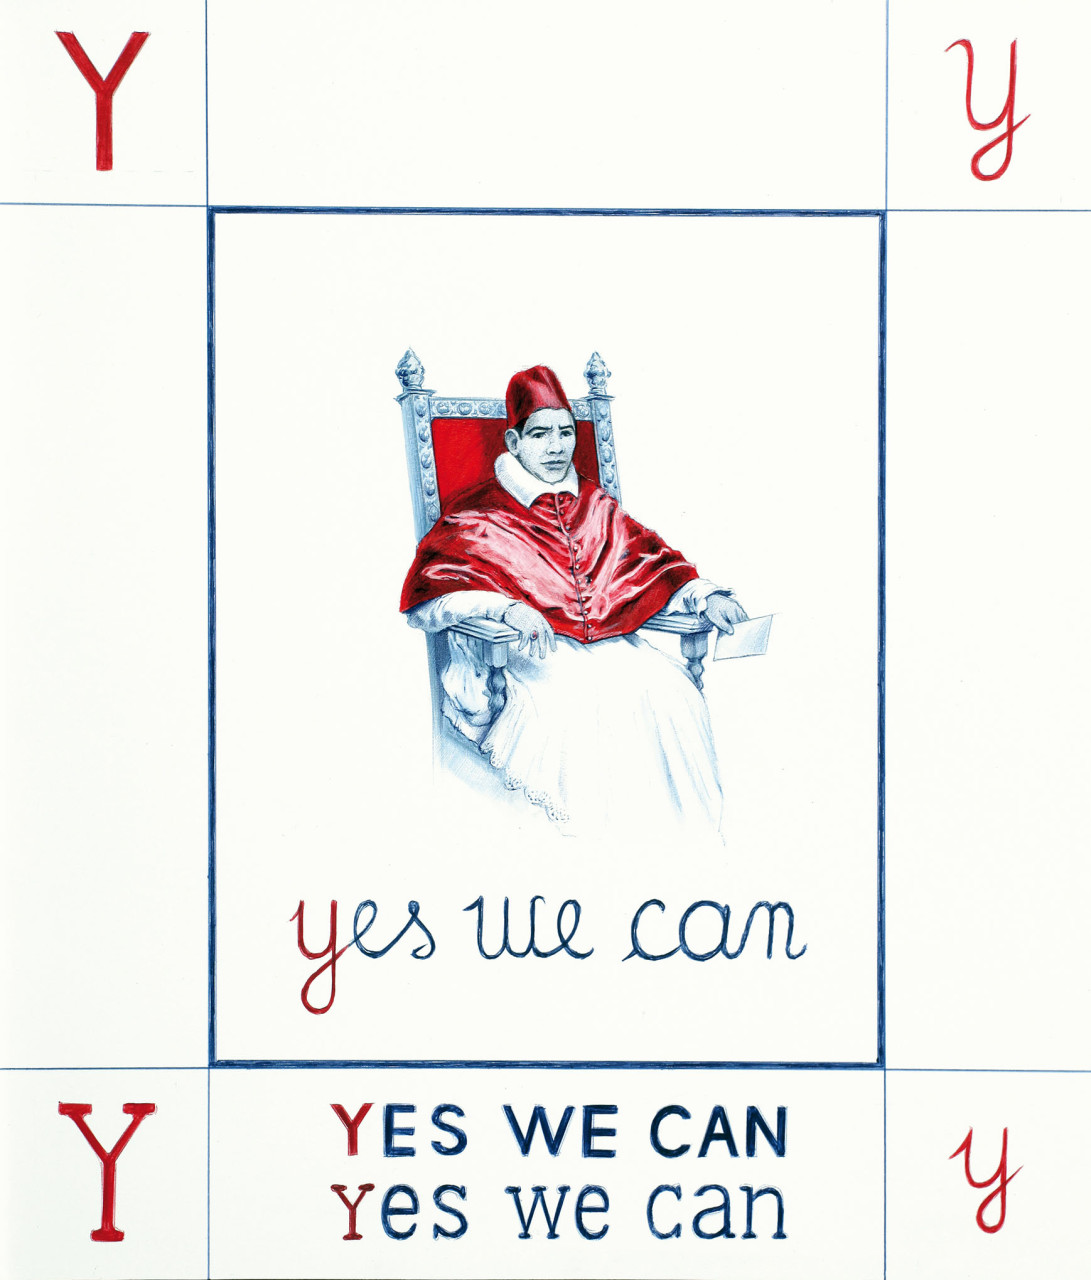 25Y-yes we can_bassa